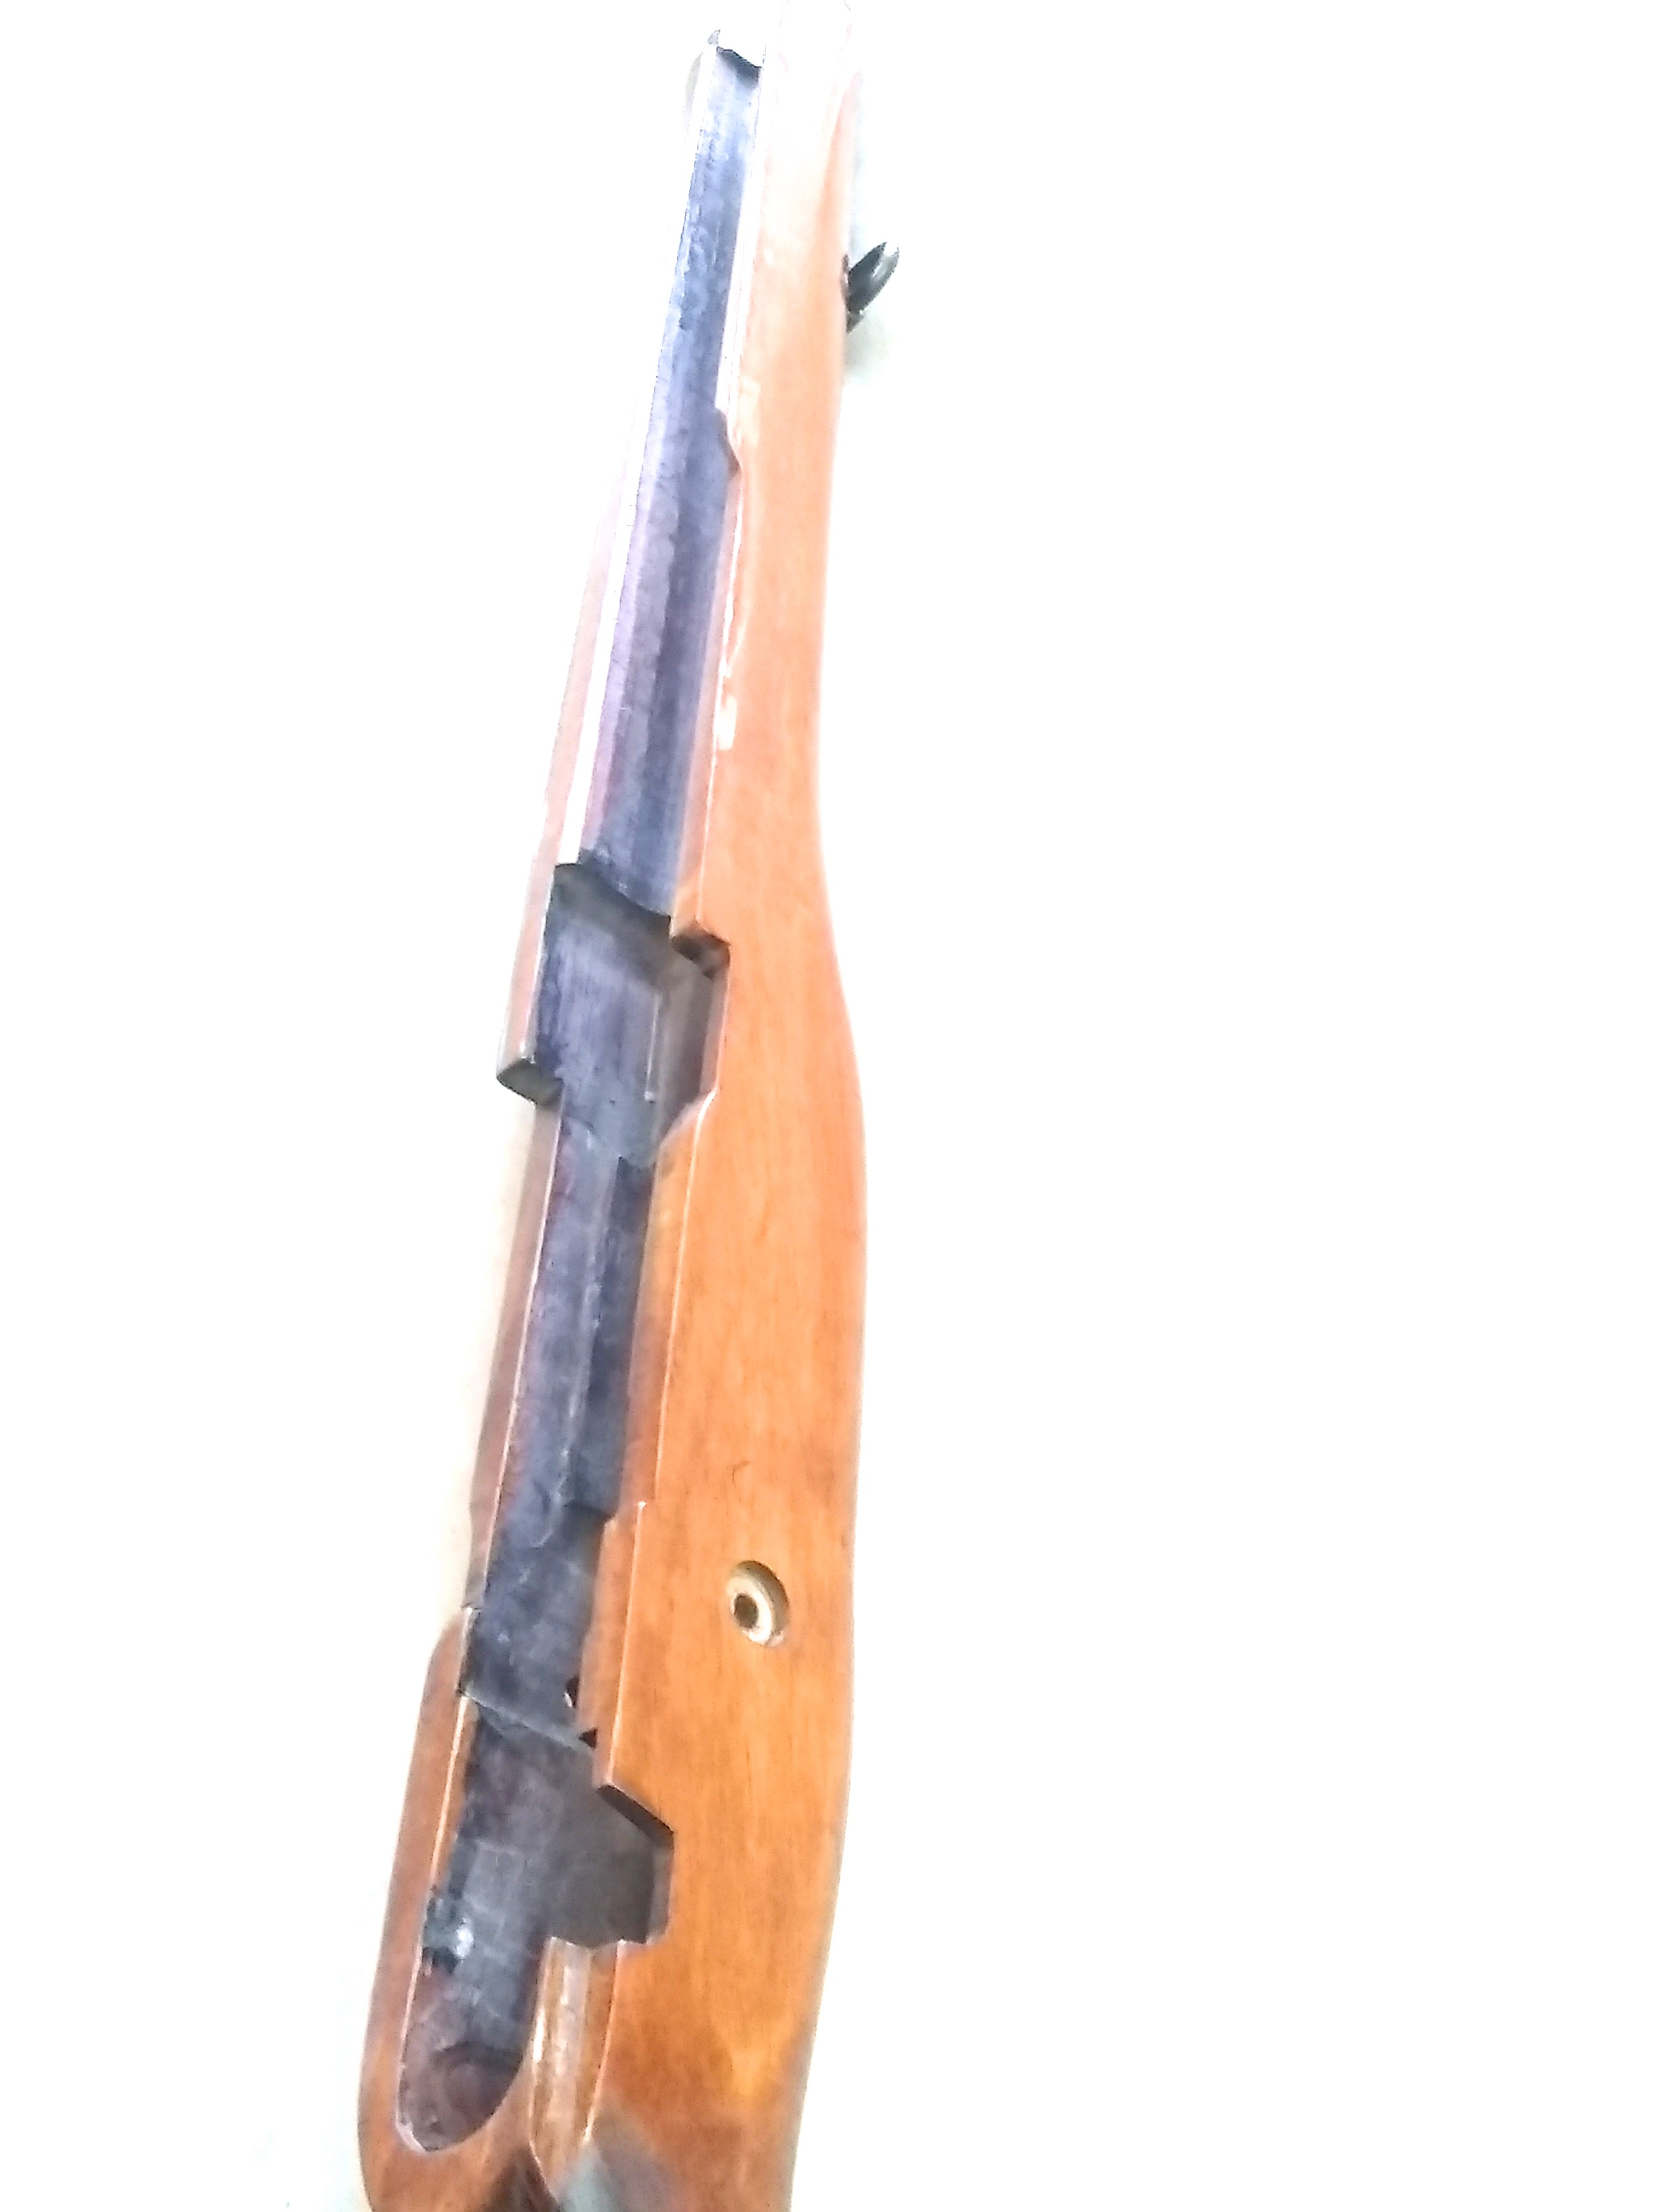 REAL WOOD M14 BODY REPLACEMENT